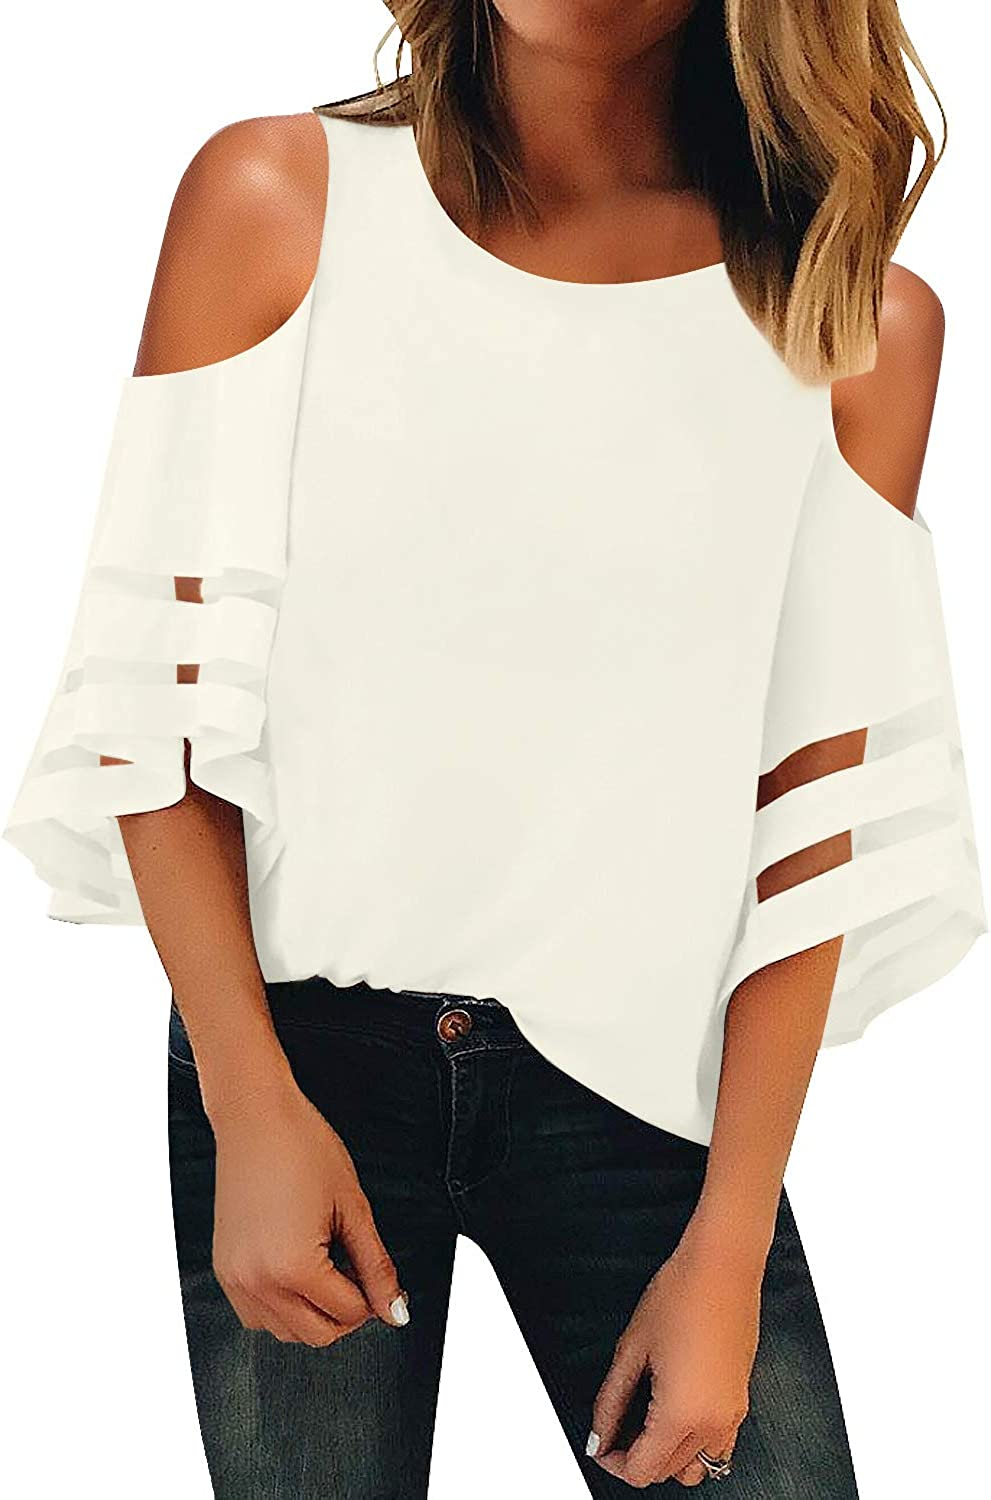 LookbookStore Womens Cold Shoulder Loose Shirt Tops 3//4 Bell Mesh Sleeve Blouse